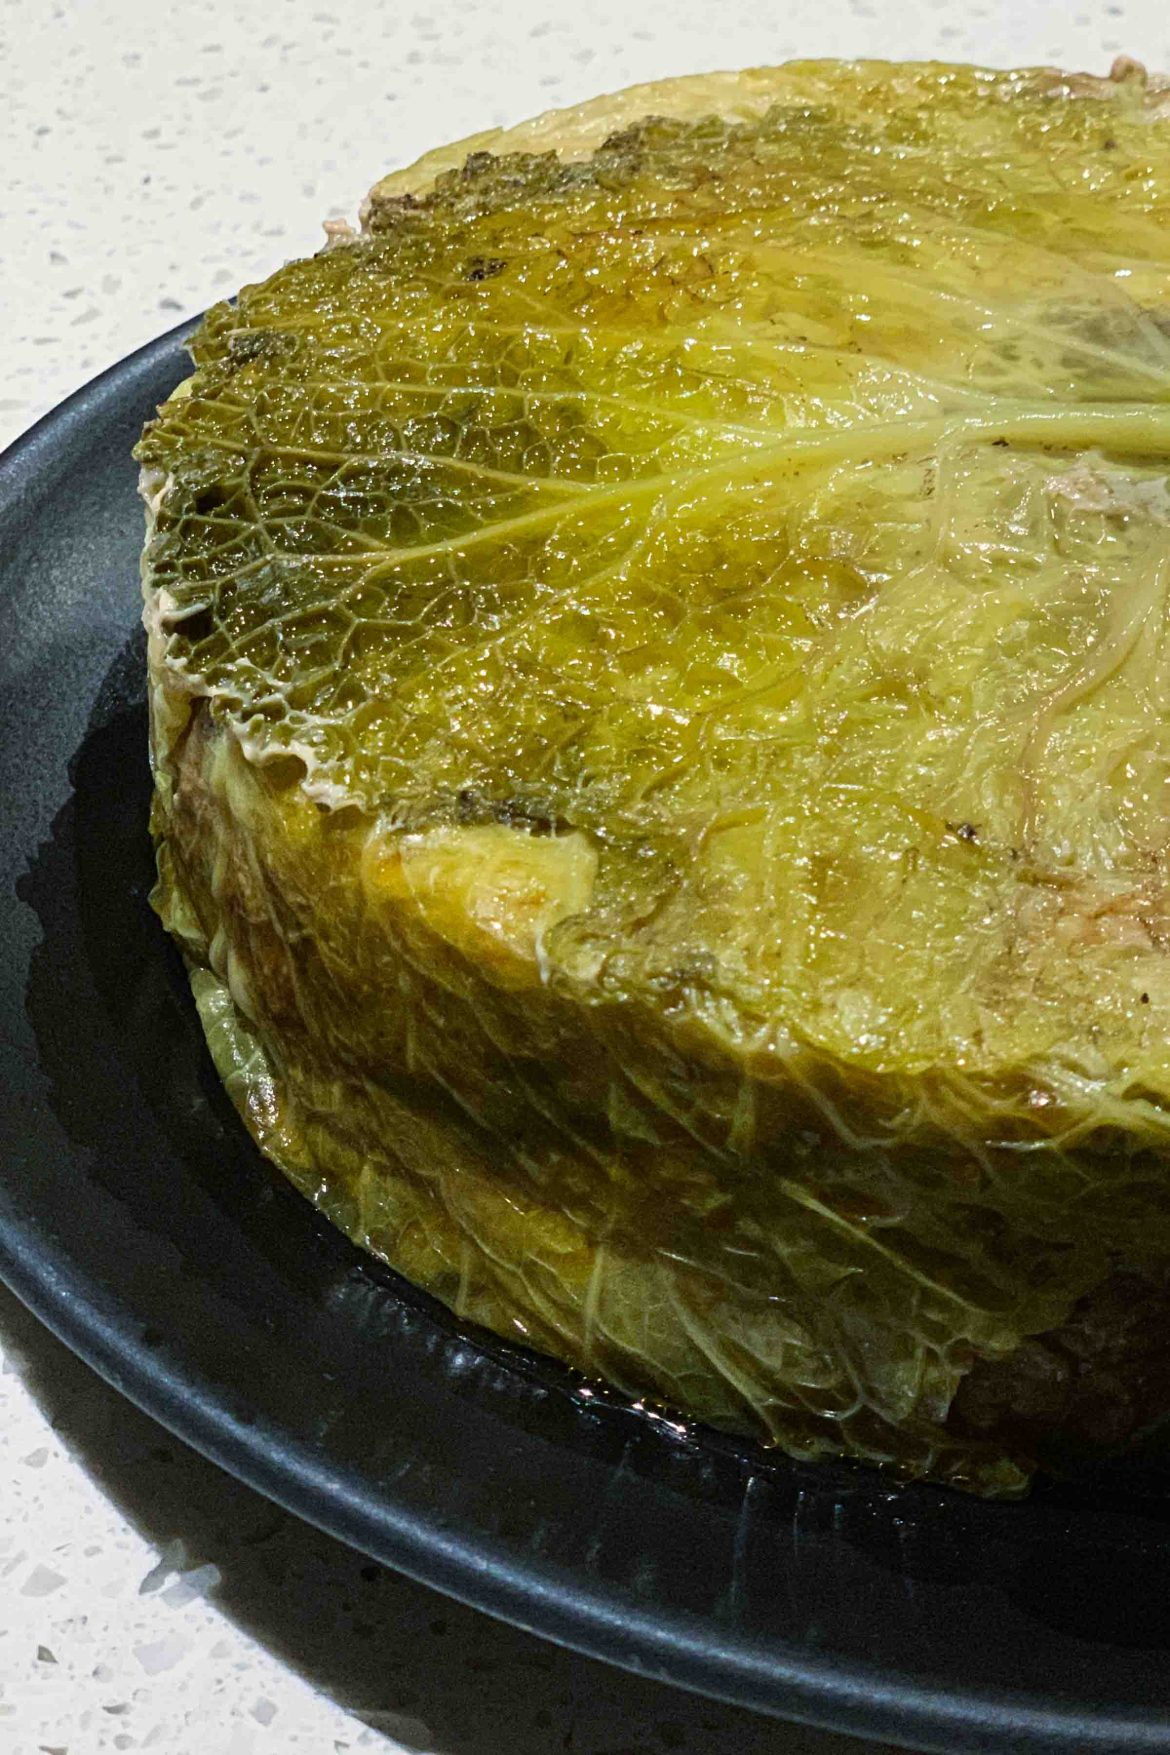 Make a French whole Stuffed Cabbage Cake called a Chou Farci. Cut a slice for lunch or dinner. | thetasteedit.com #recipe #cabbage #French